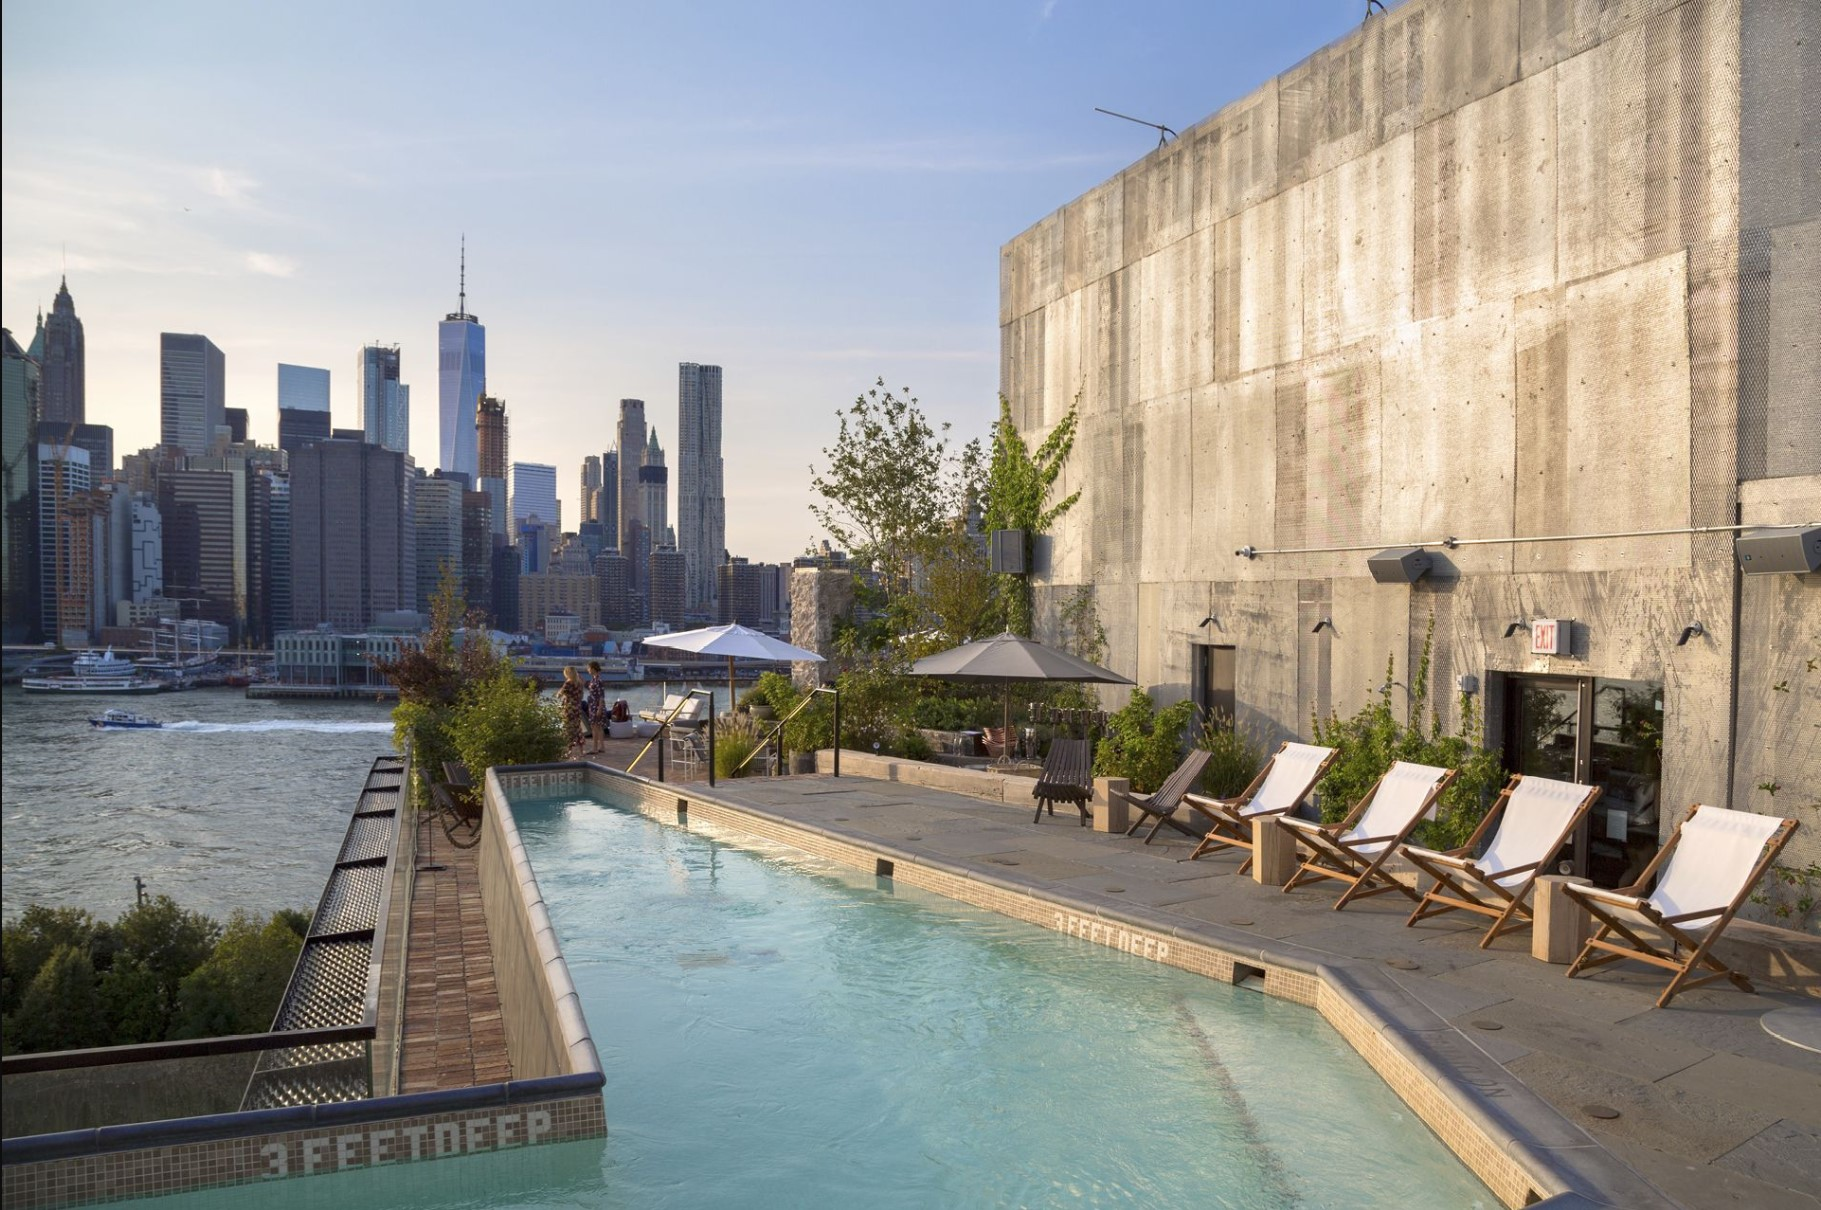 Rooftop pool with Manhattan skyline in background